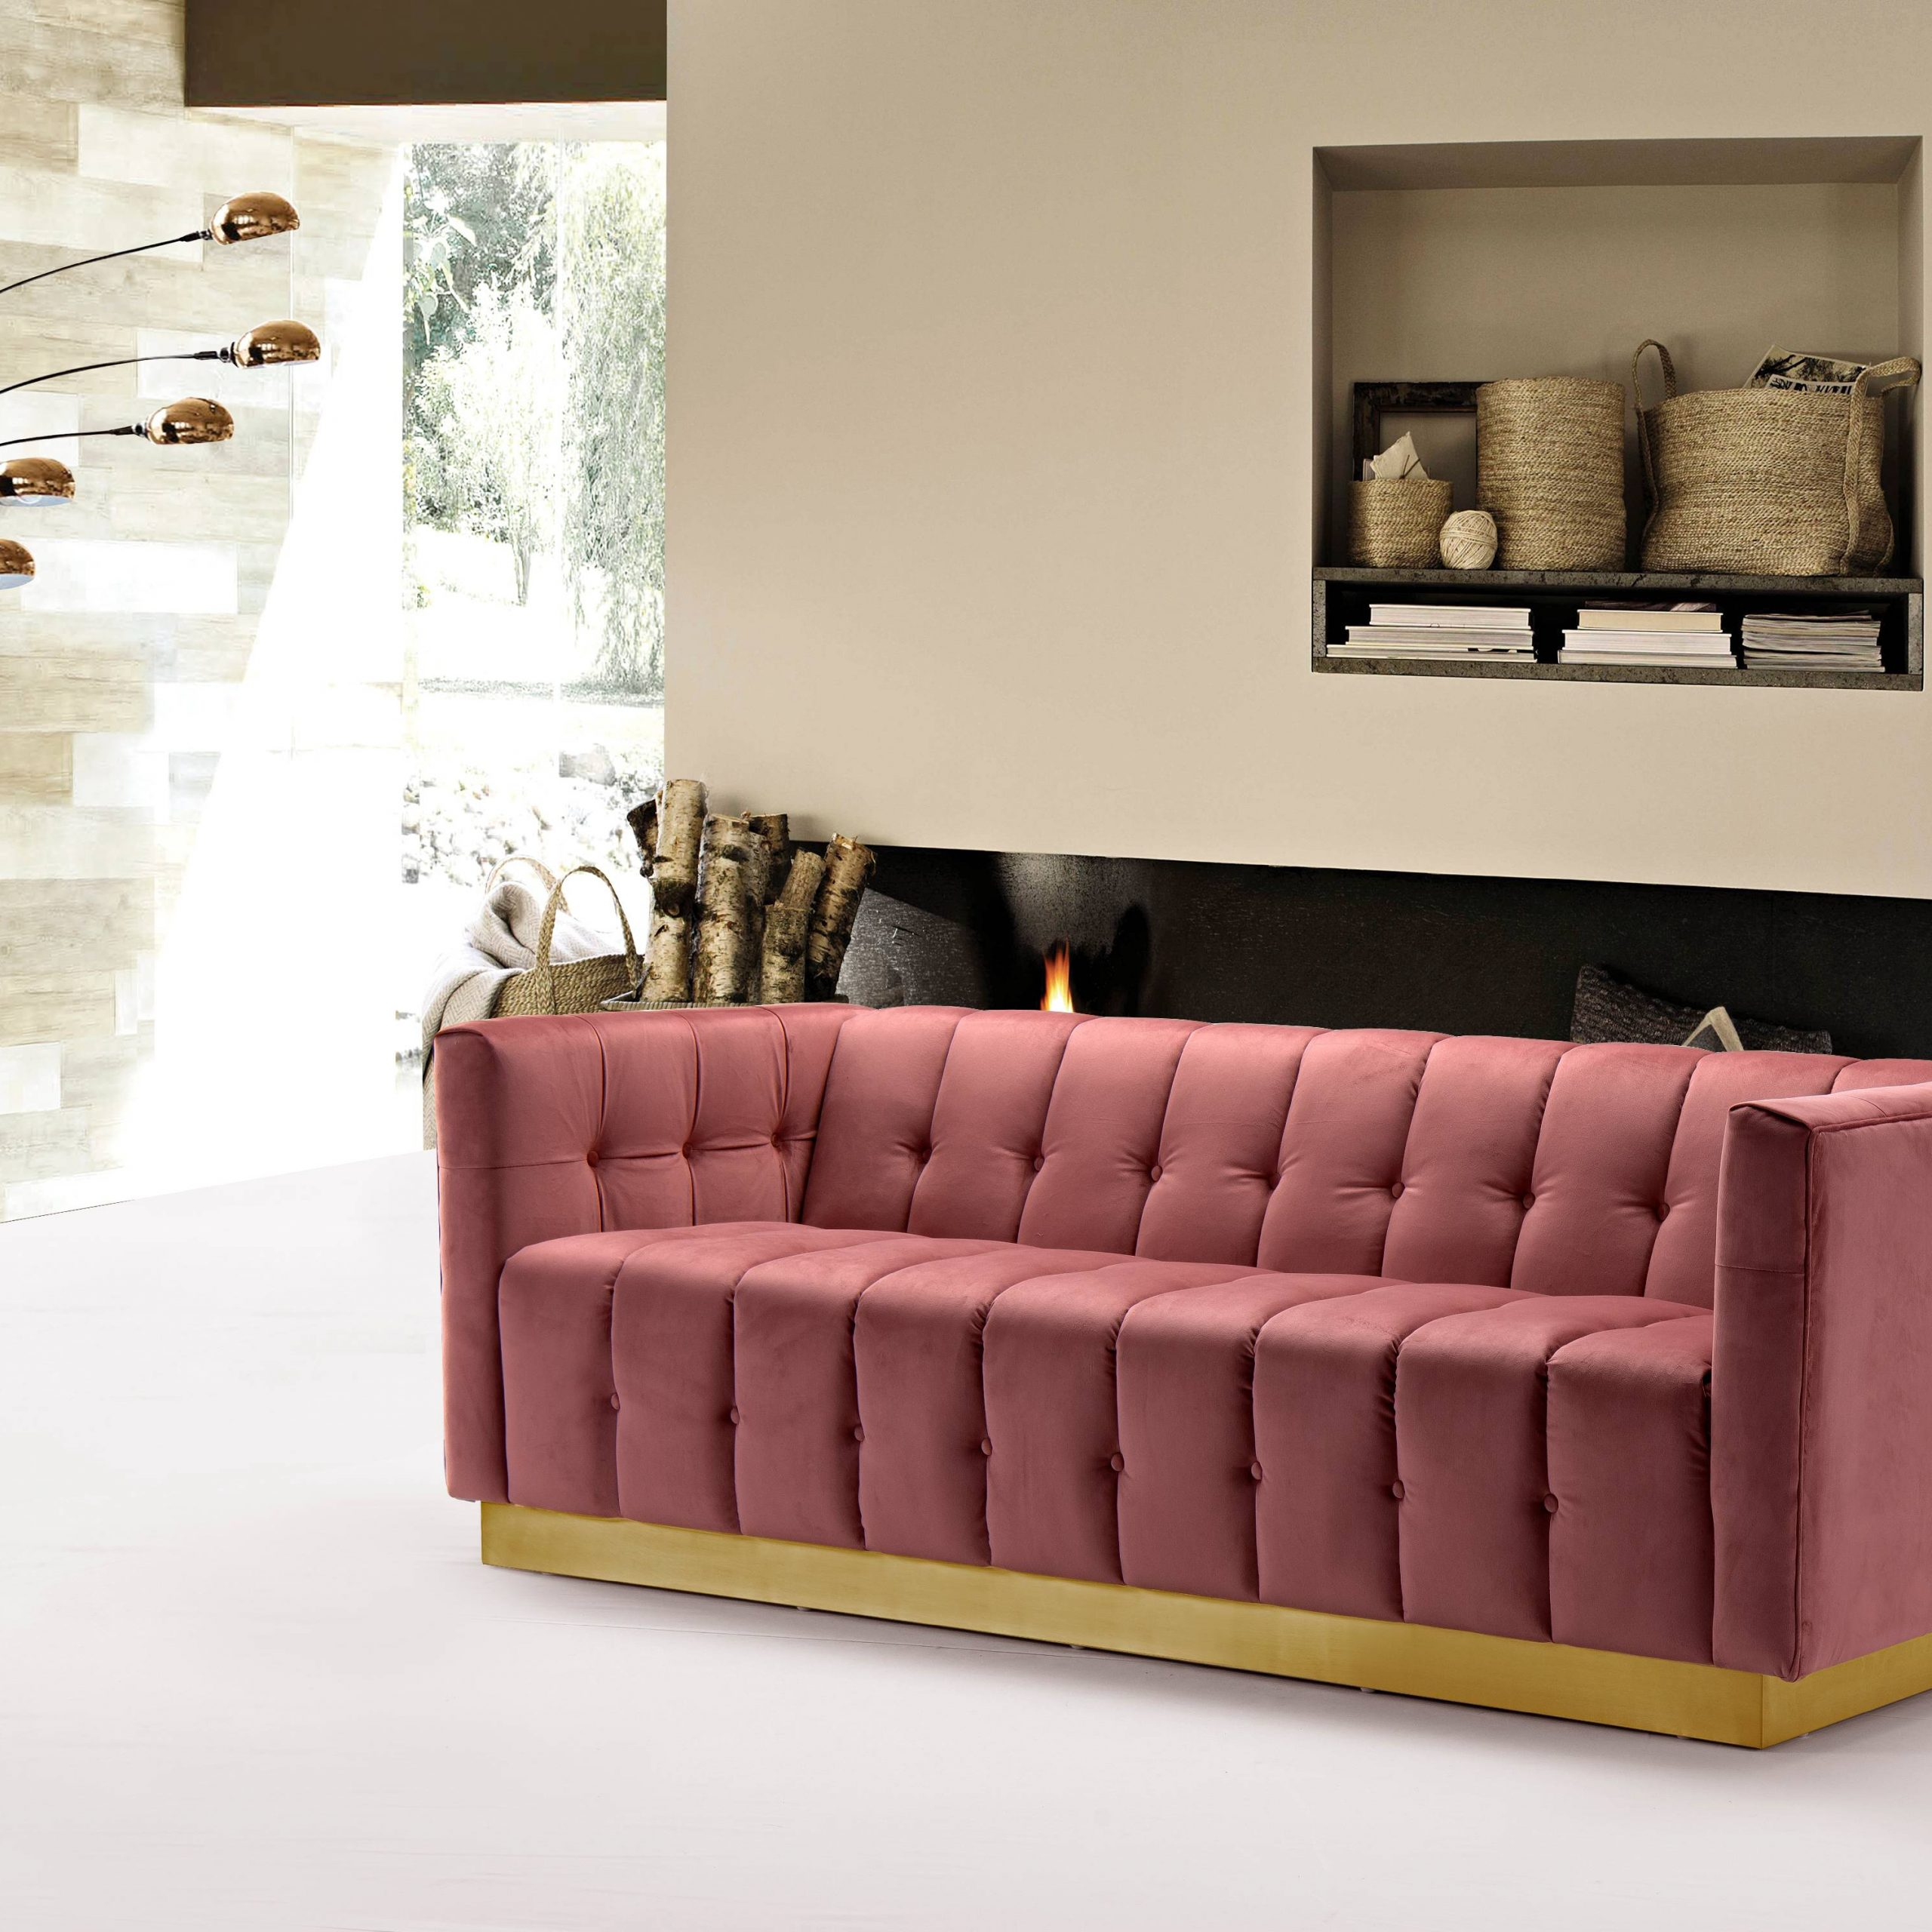 Most Popular Chic Home Aviv Velvet Upholstered Channel Quilted Single With French Seamed Sectional Sofas In Velvet (View 3 of 20)